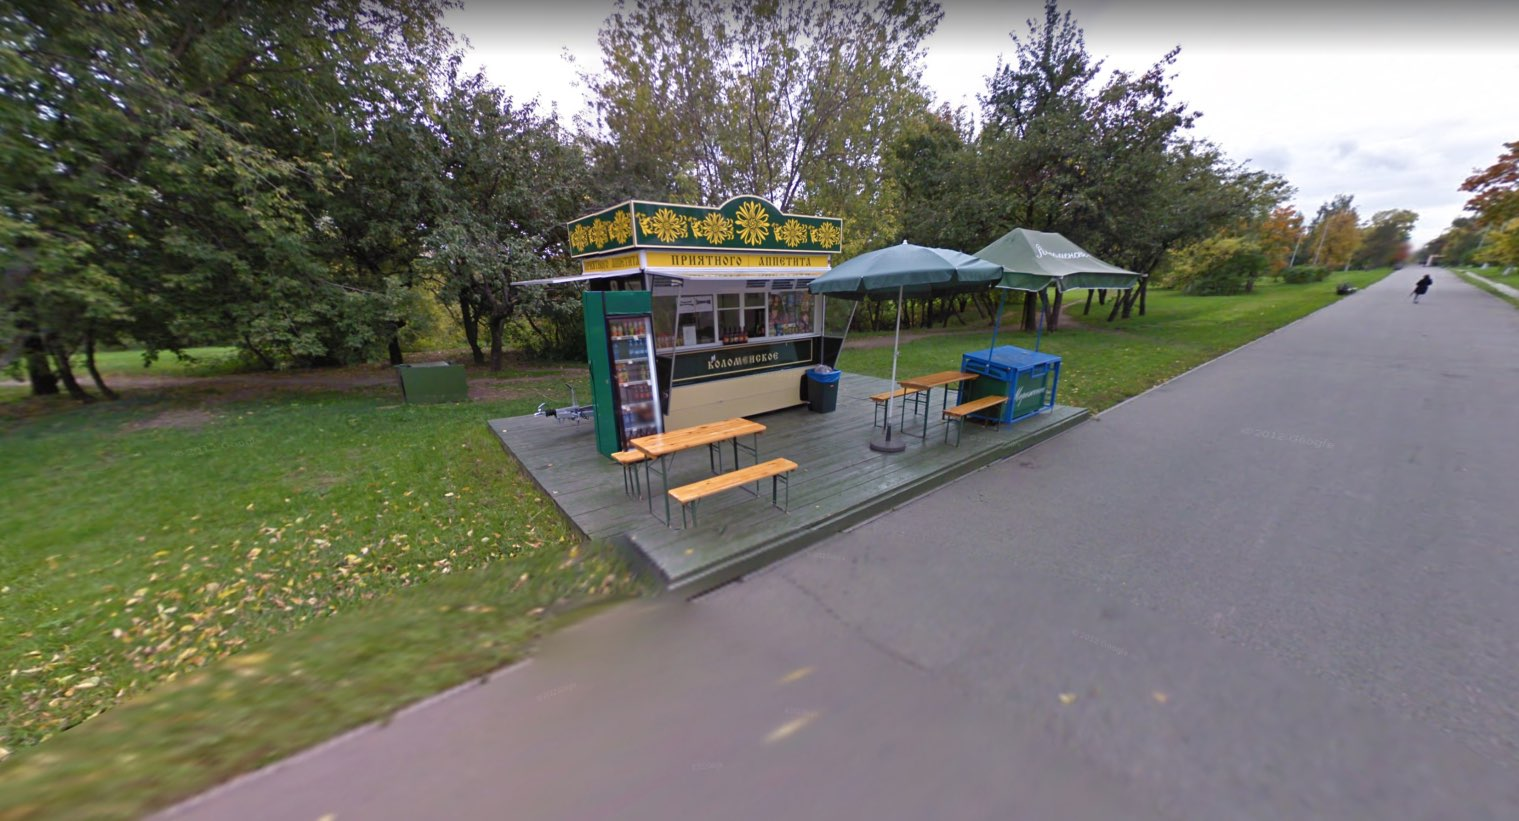 Food stall in Kolomenskoye 2